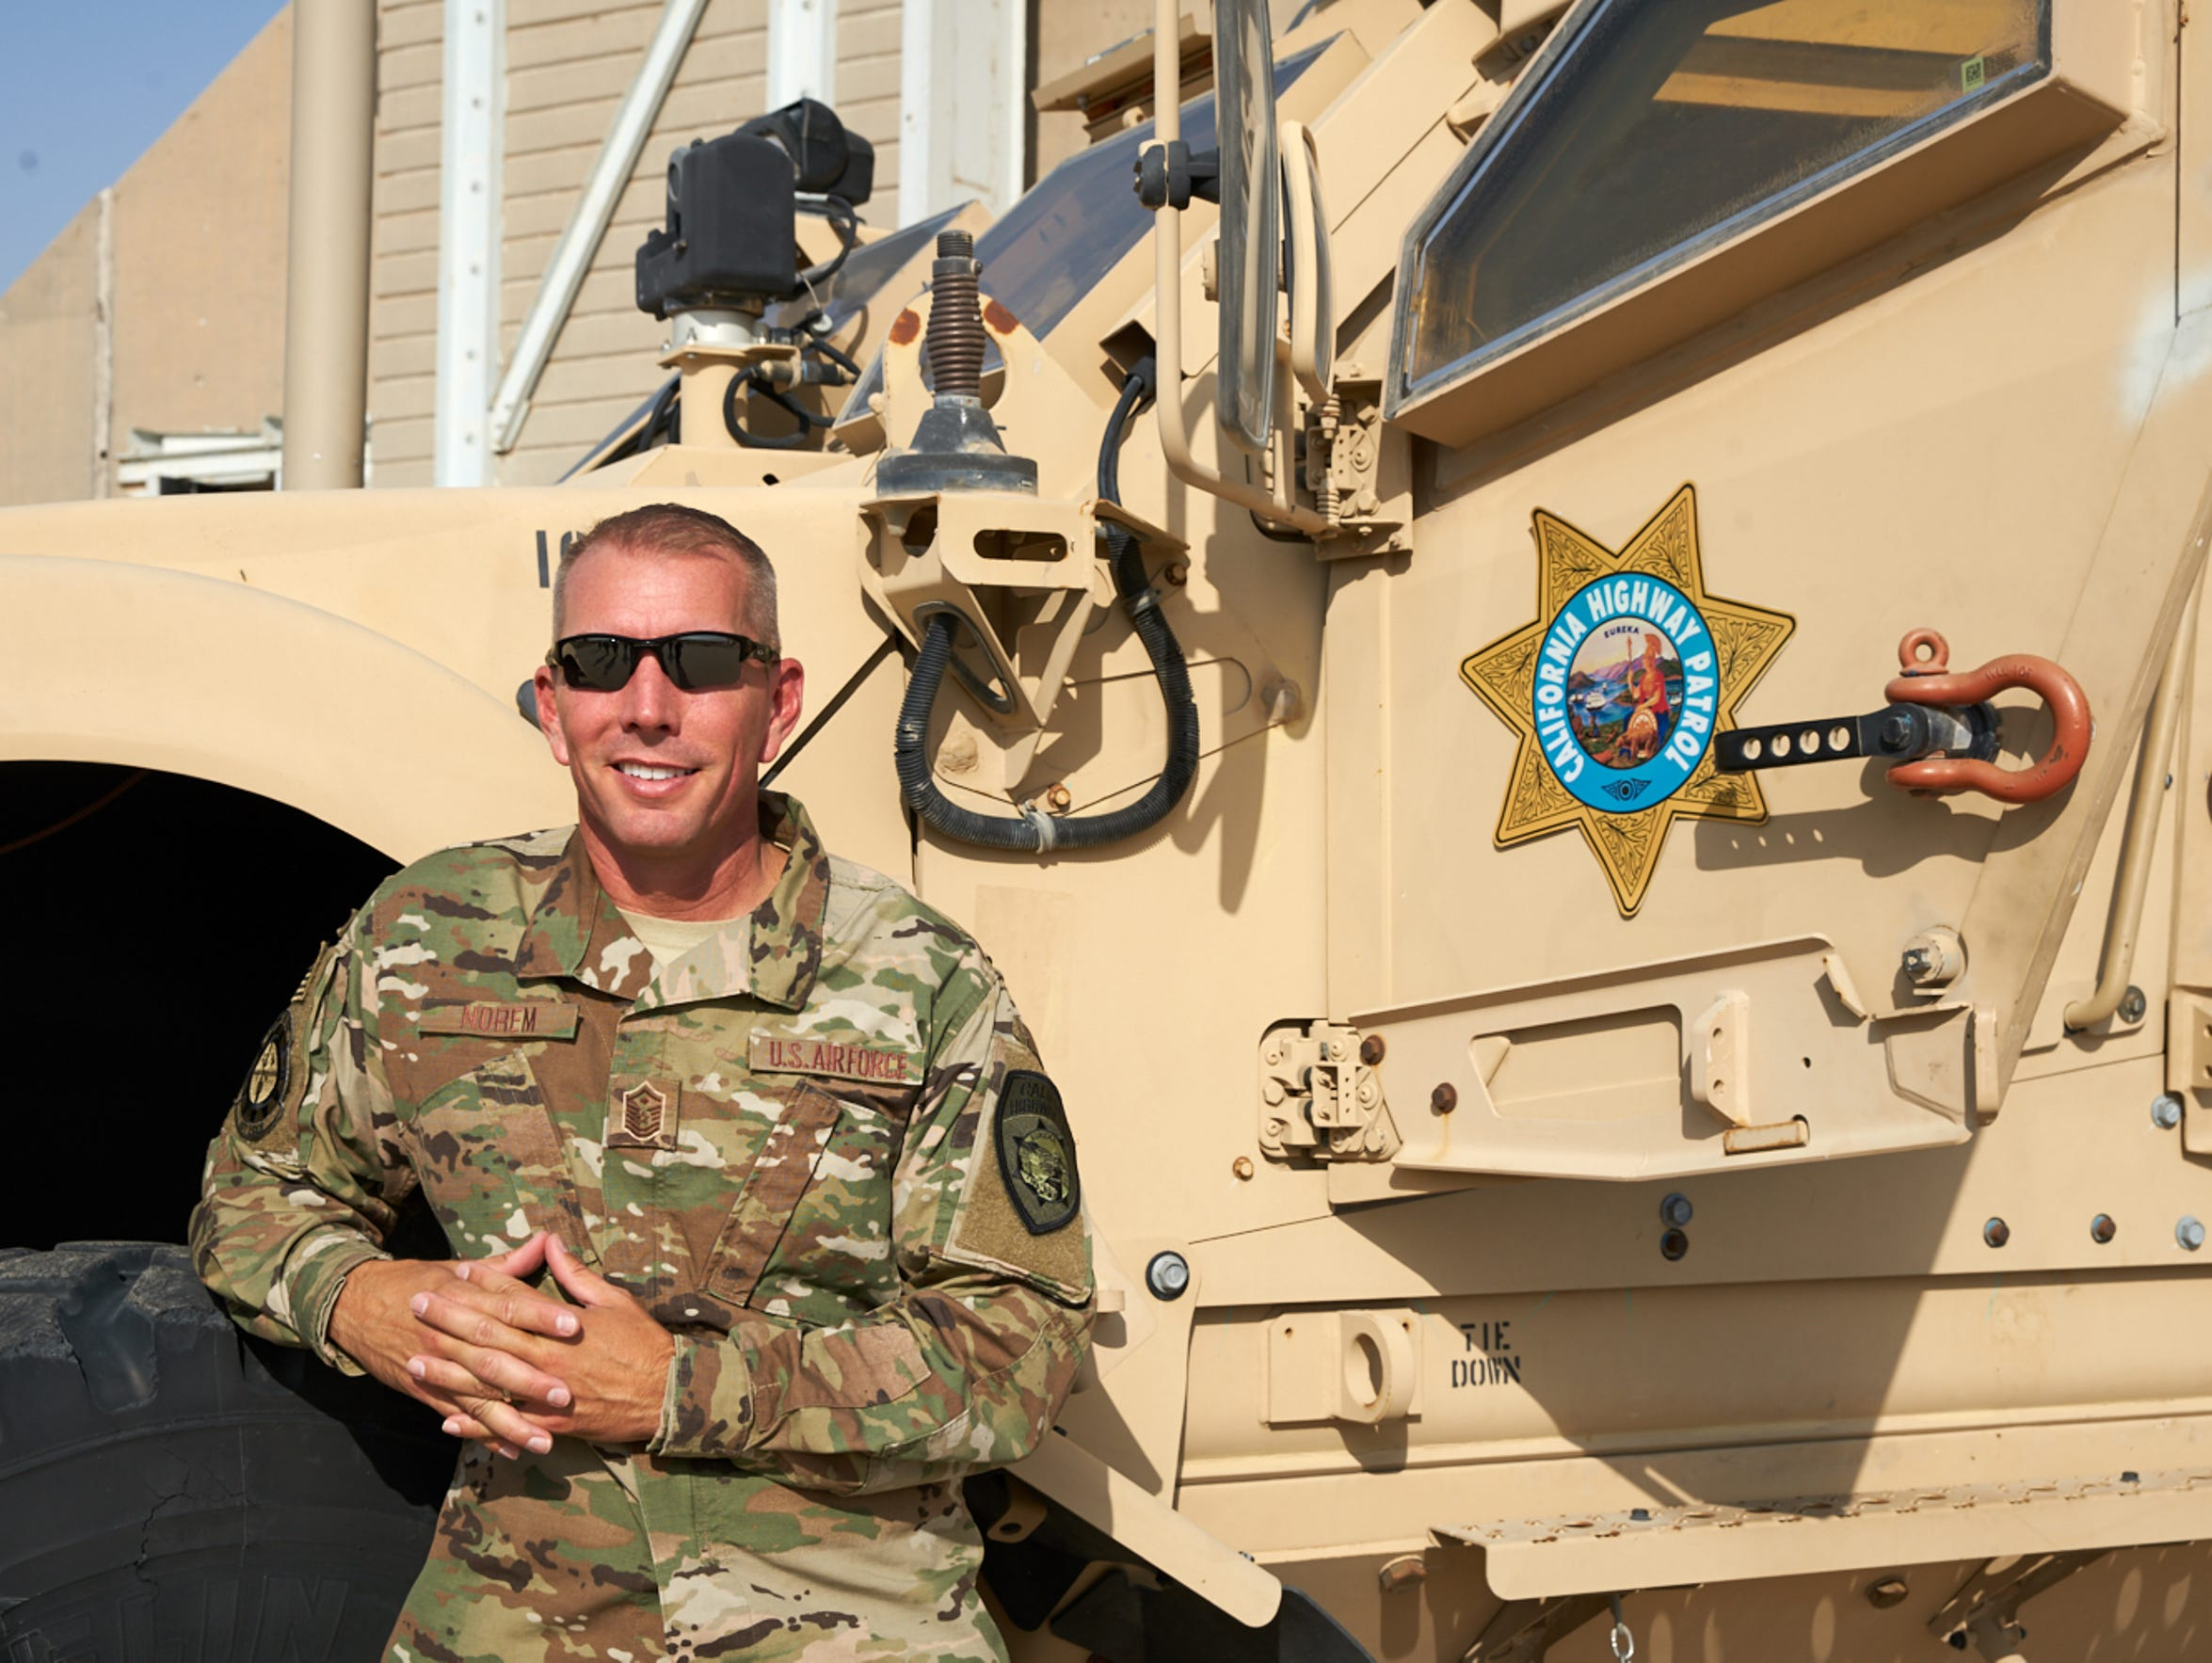 Dane Norem poses with a military vehicle during a recent